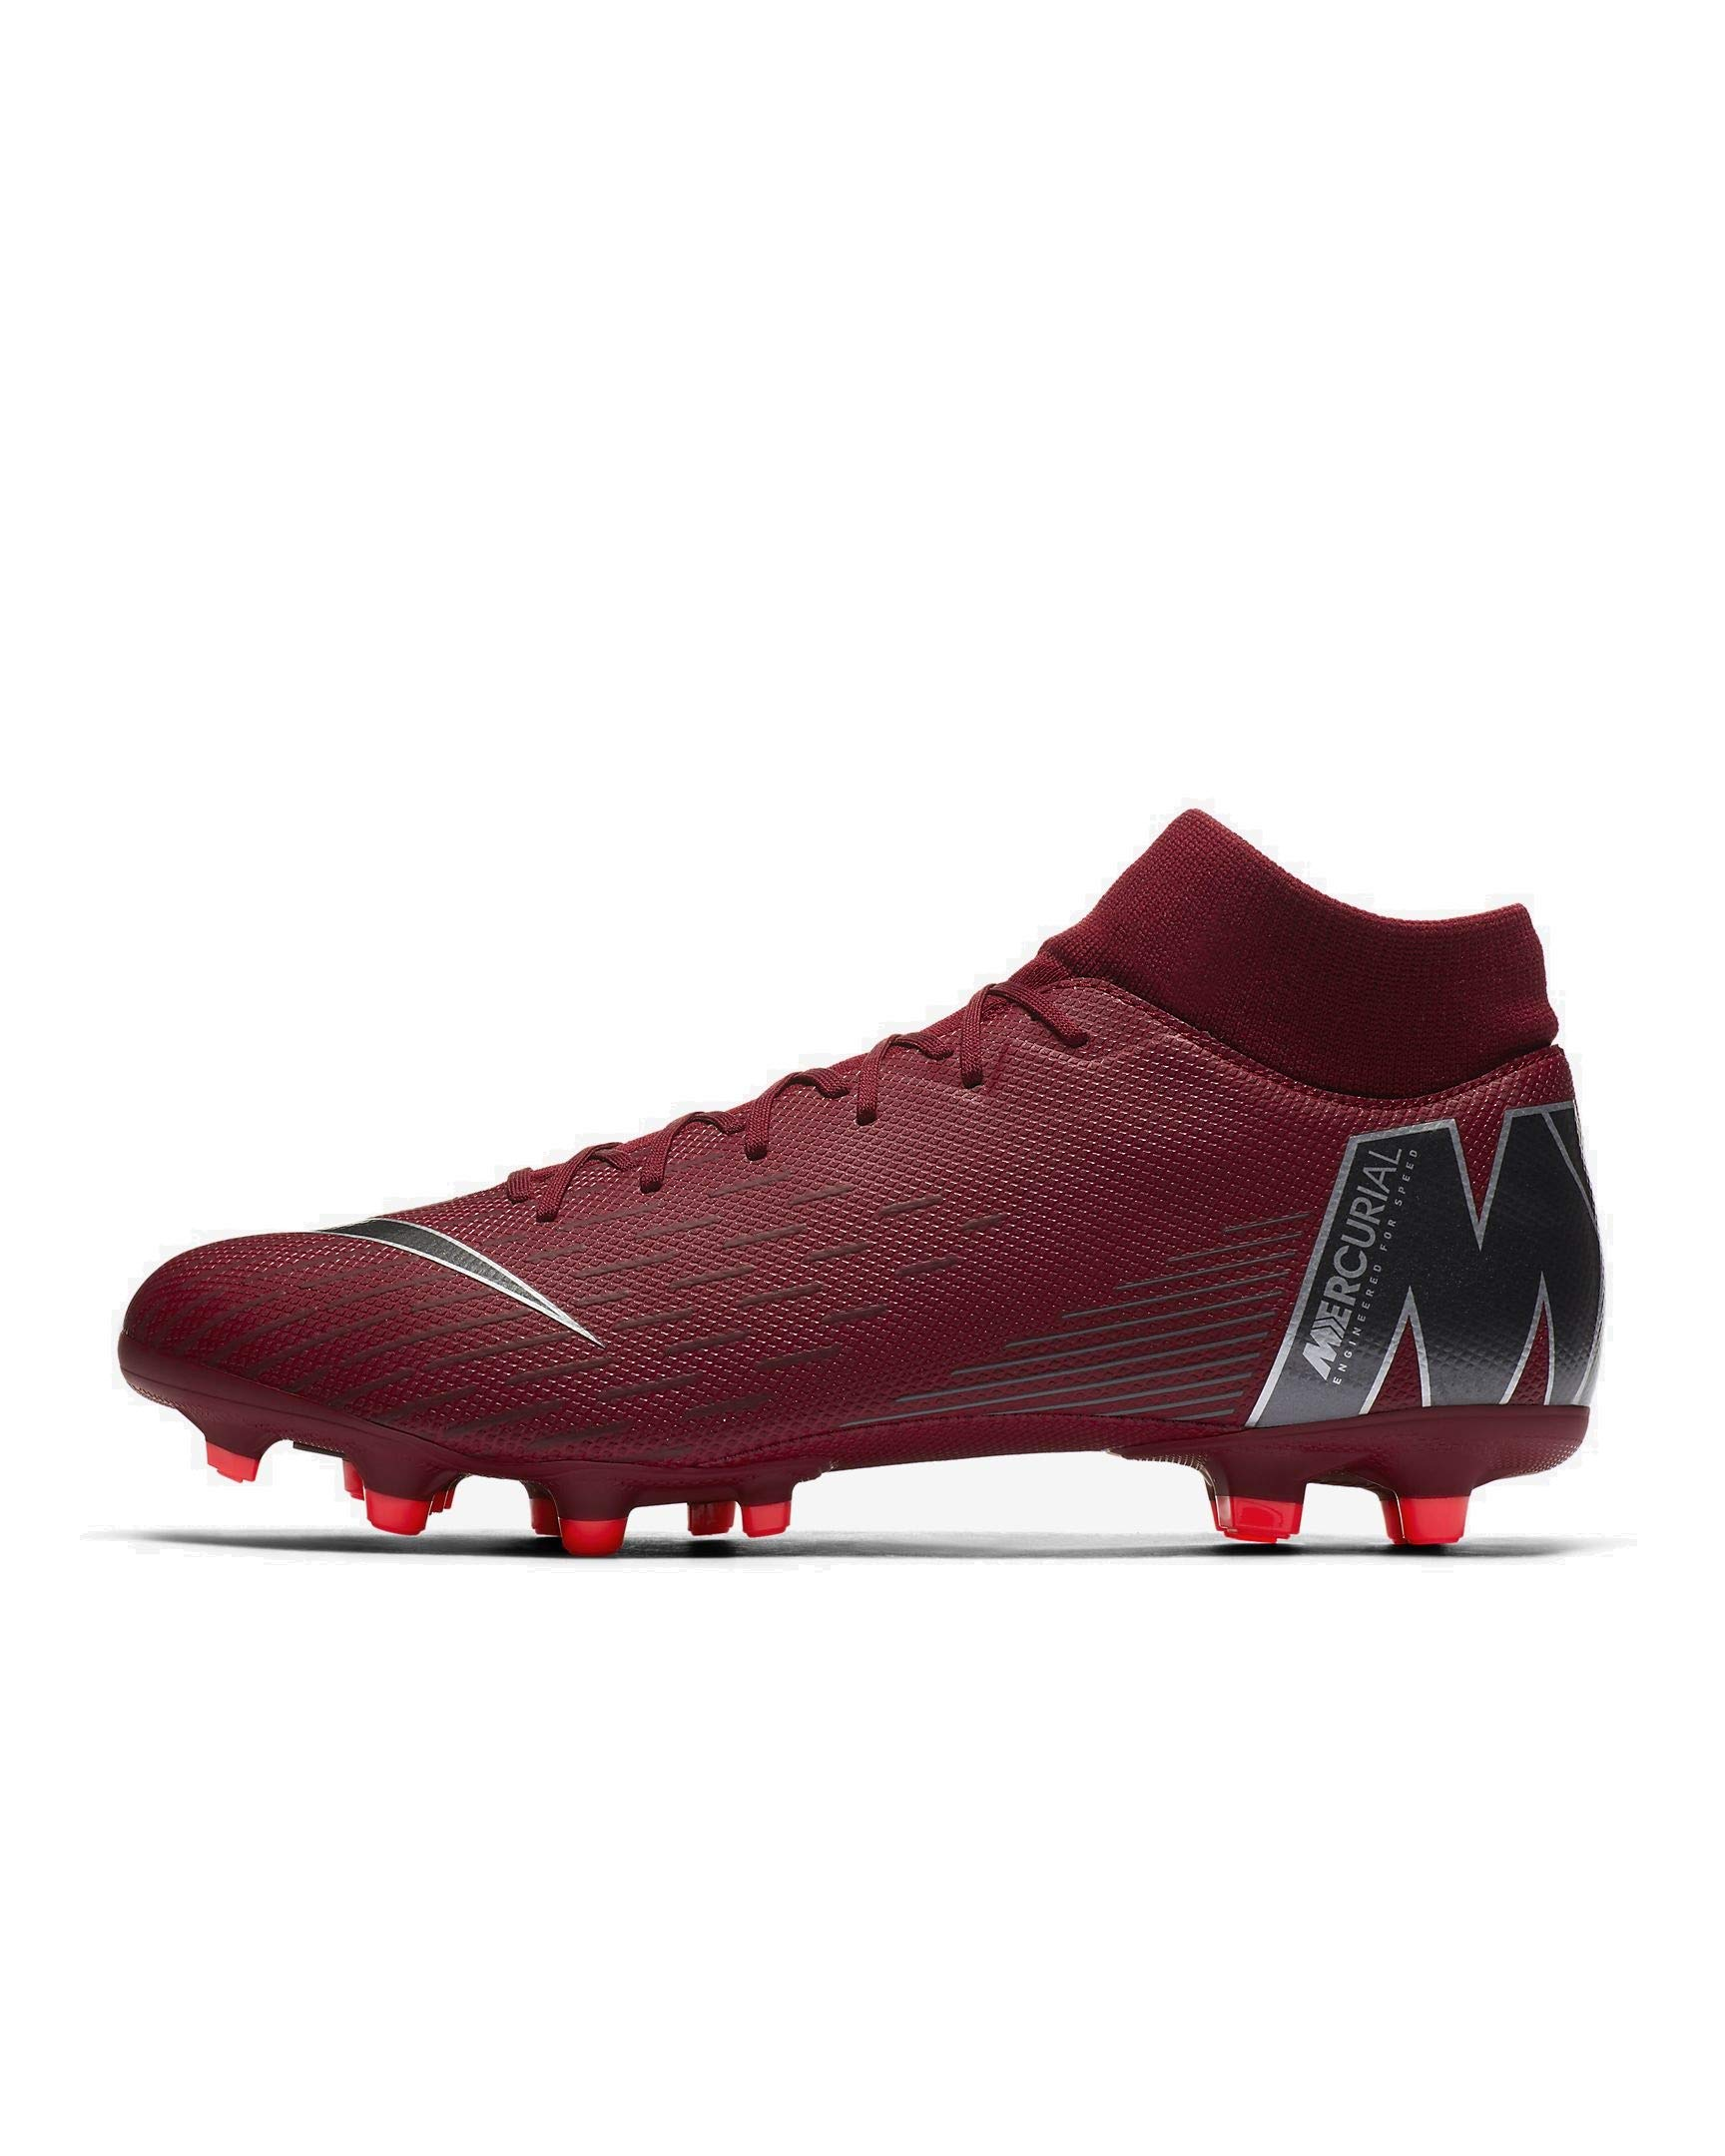 NIKE Men's Mercurial Superfly VI Academy FG/MG Soccer Cleats (Team Red/MTLC Dark Grey) (10.5)